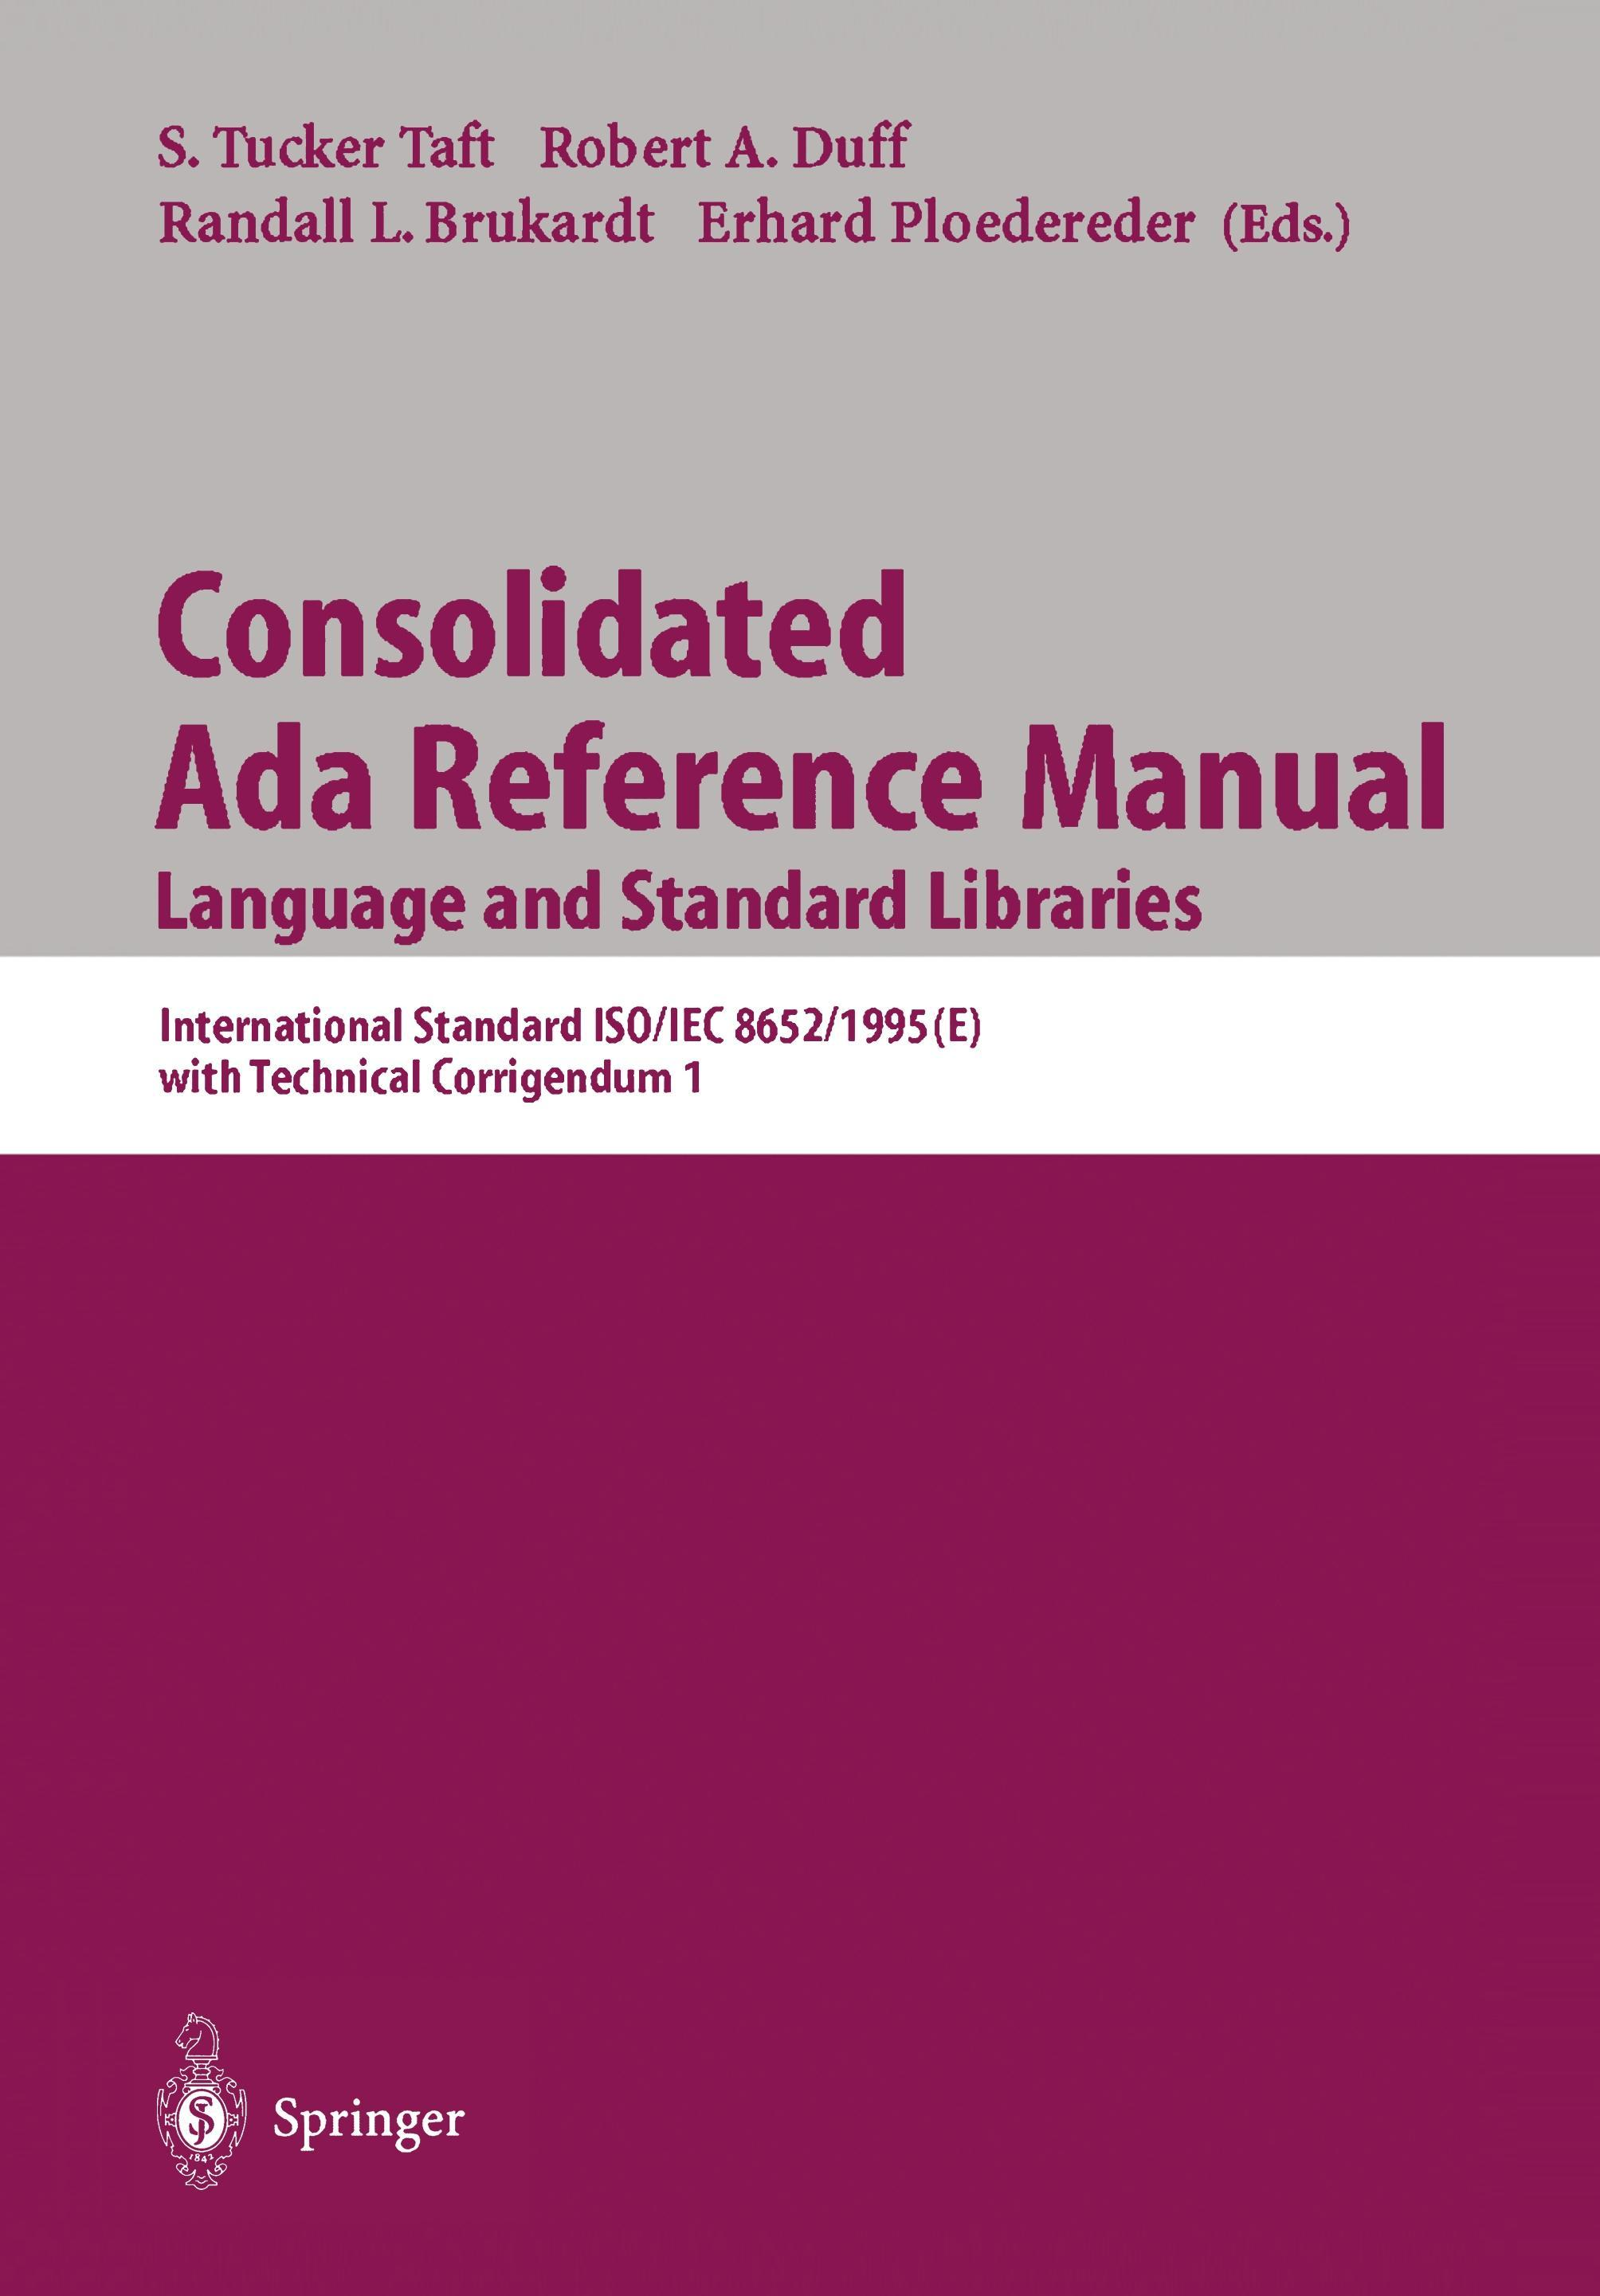 Consolidated Ada Reference Manual, Language and Standard Libraries Taft, S. Tu..